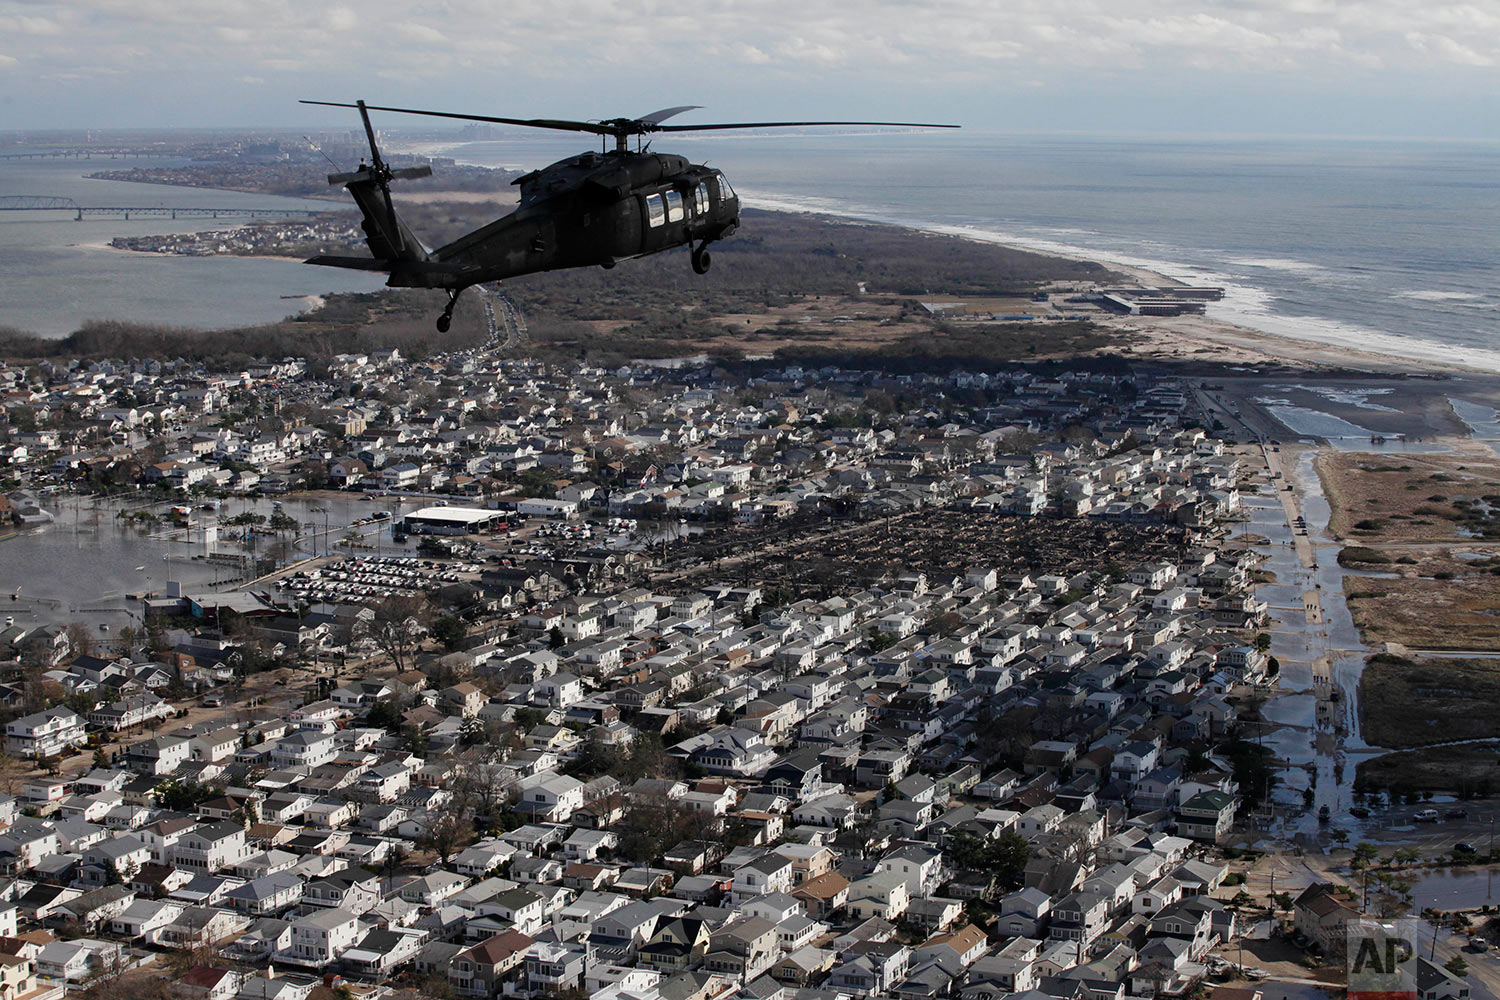 In this Oct. 31, 2012 aerial photo, a New York Air National Guard helicopter with Gov. Andrew Cuomo aboard flies over the ocean side community of Breezy Point in the Queens borough of New York to survey the damage caused by Superstorm Sandy. (AP Photo/Mark Lennihan)